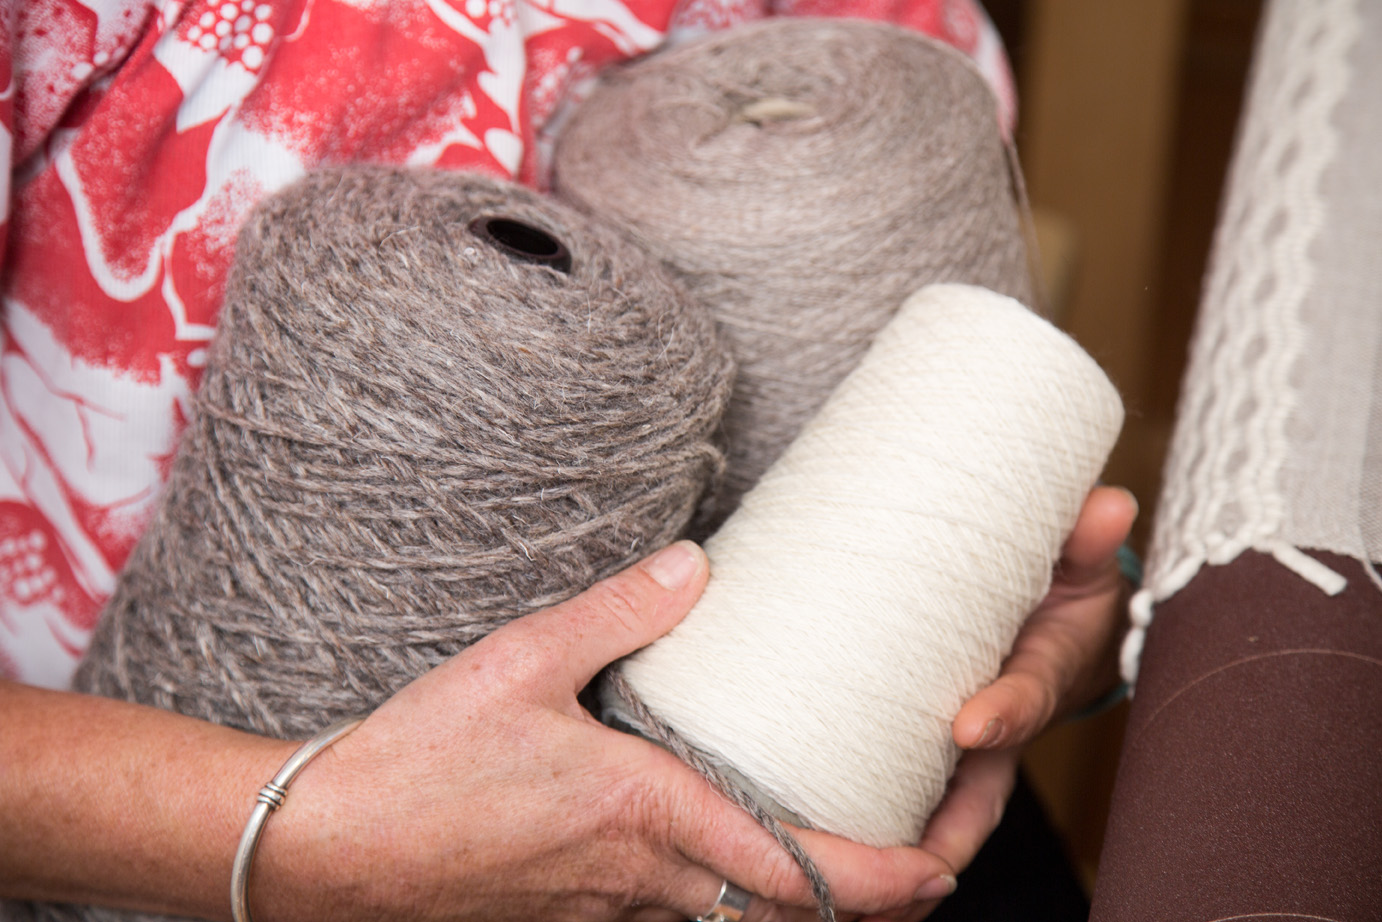 HERO Yarns   Sourcing fine and strong undyed wool yarns, grown and processed in New Zealand, is fundamental to the quality of Niche's woven products. My hero yarns are from Corriedale sheep, raised and mill spun by   Anna Gratton Ltd   in Fielding, Manawatu; Romney lambswool from   Palliser Ridge   near Pirinoa in South Wairarapa, and yarn spun in Milton with wool from Romney sheep raised by Sue and Stuart Albrey at   Fine Fibre Farms   near Waimate, South Canterbury - their homemade blackberry jam is almost as good as their wool.